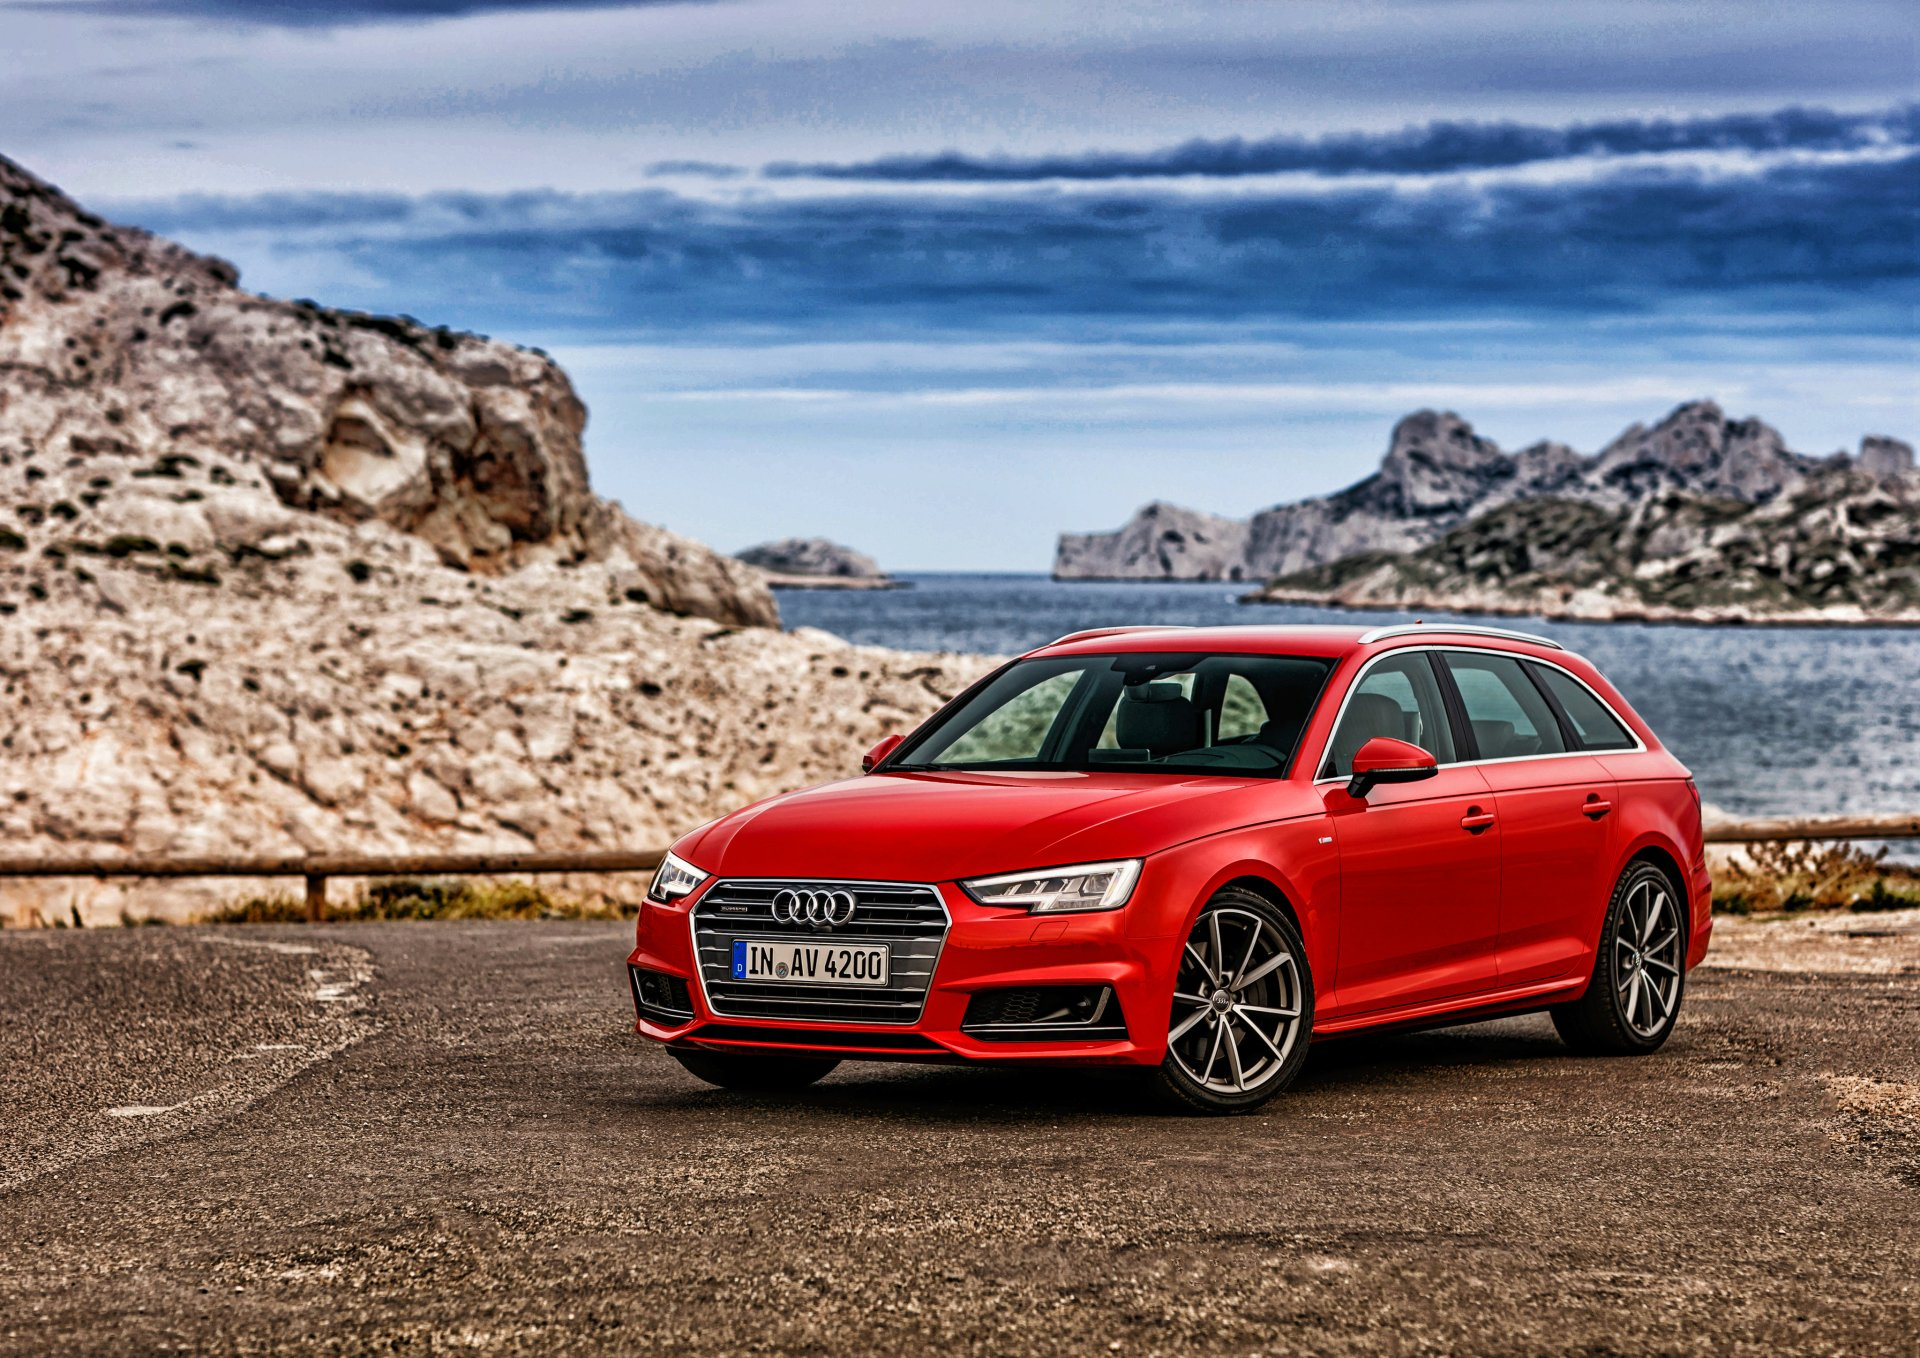 Vehicles - Audi A4  Audi Red Car Car Vehicle Luxury Car Wallpaper